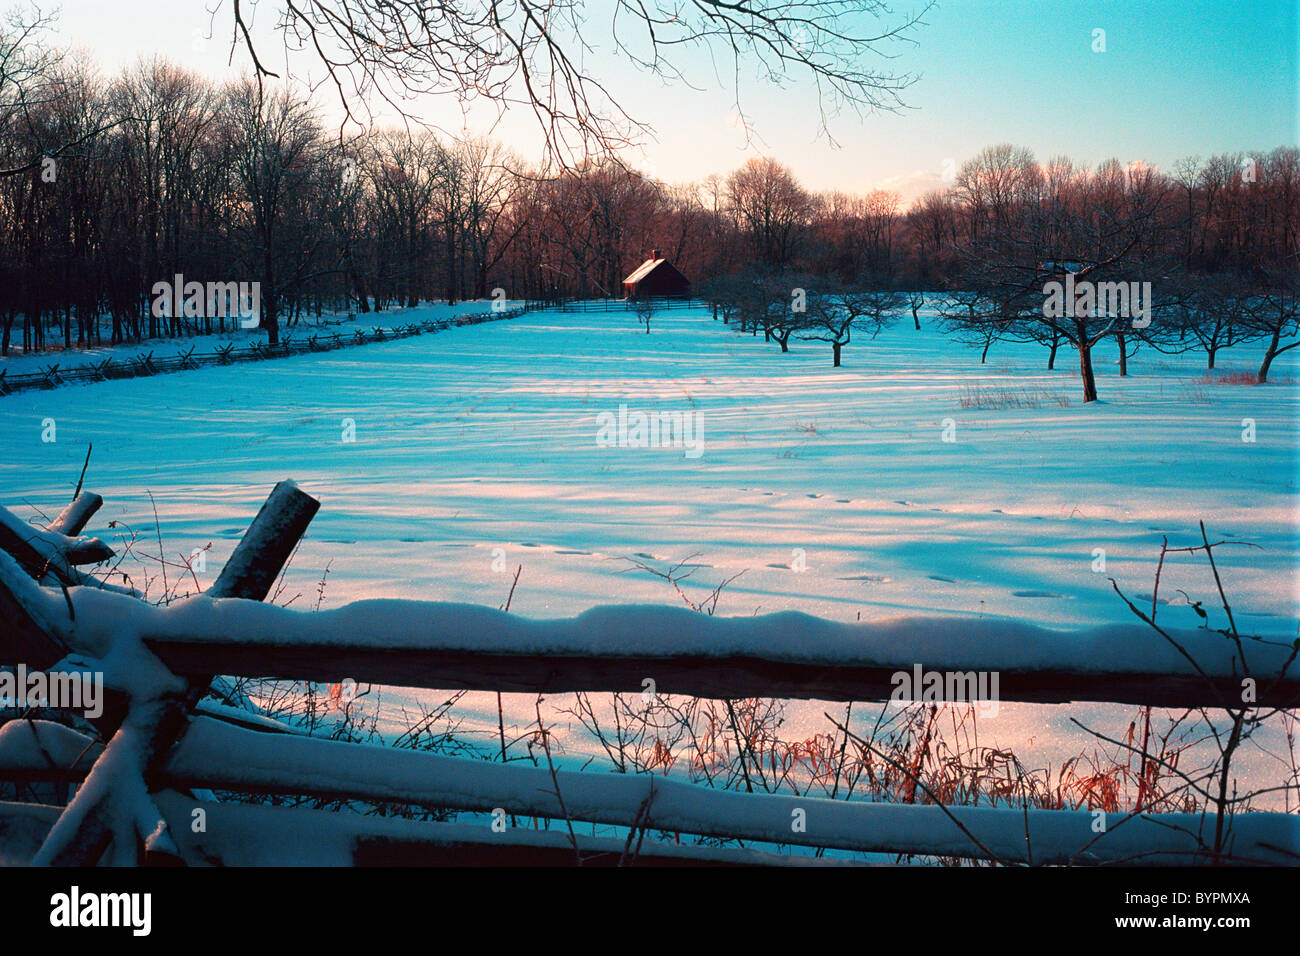 Snow Covered Orchard, Historic Wicks Farm, Jockey Hollow State Park, New Jersey - Stock Image